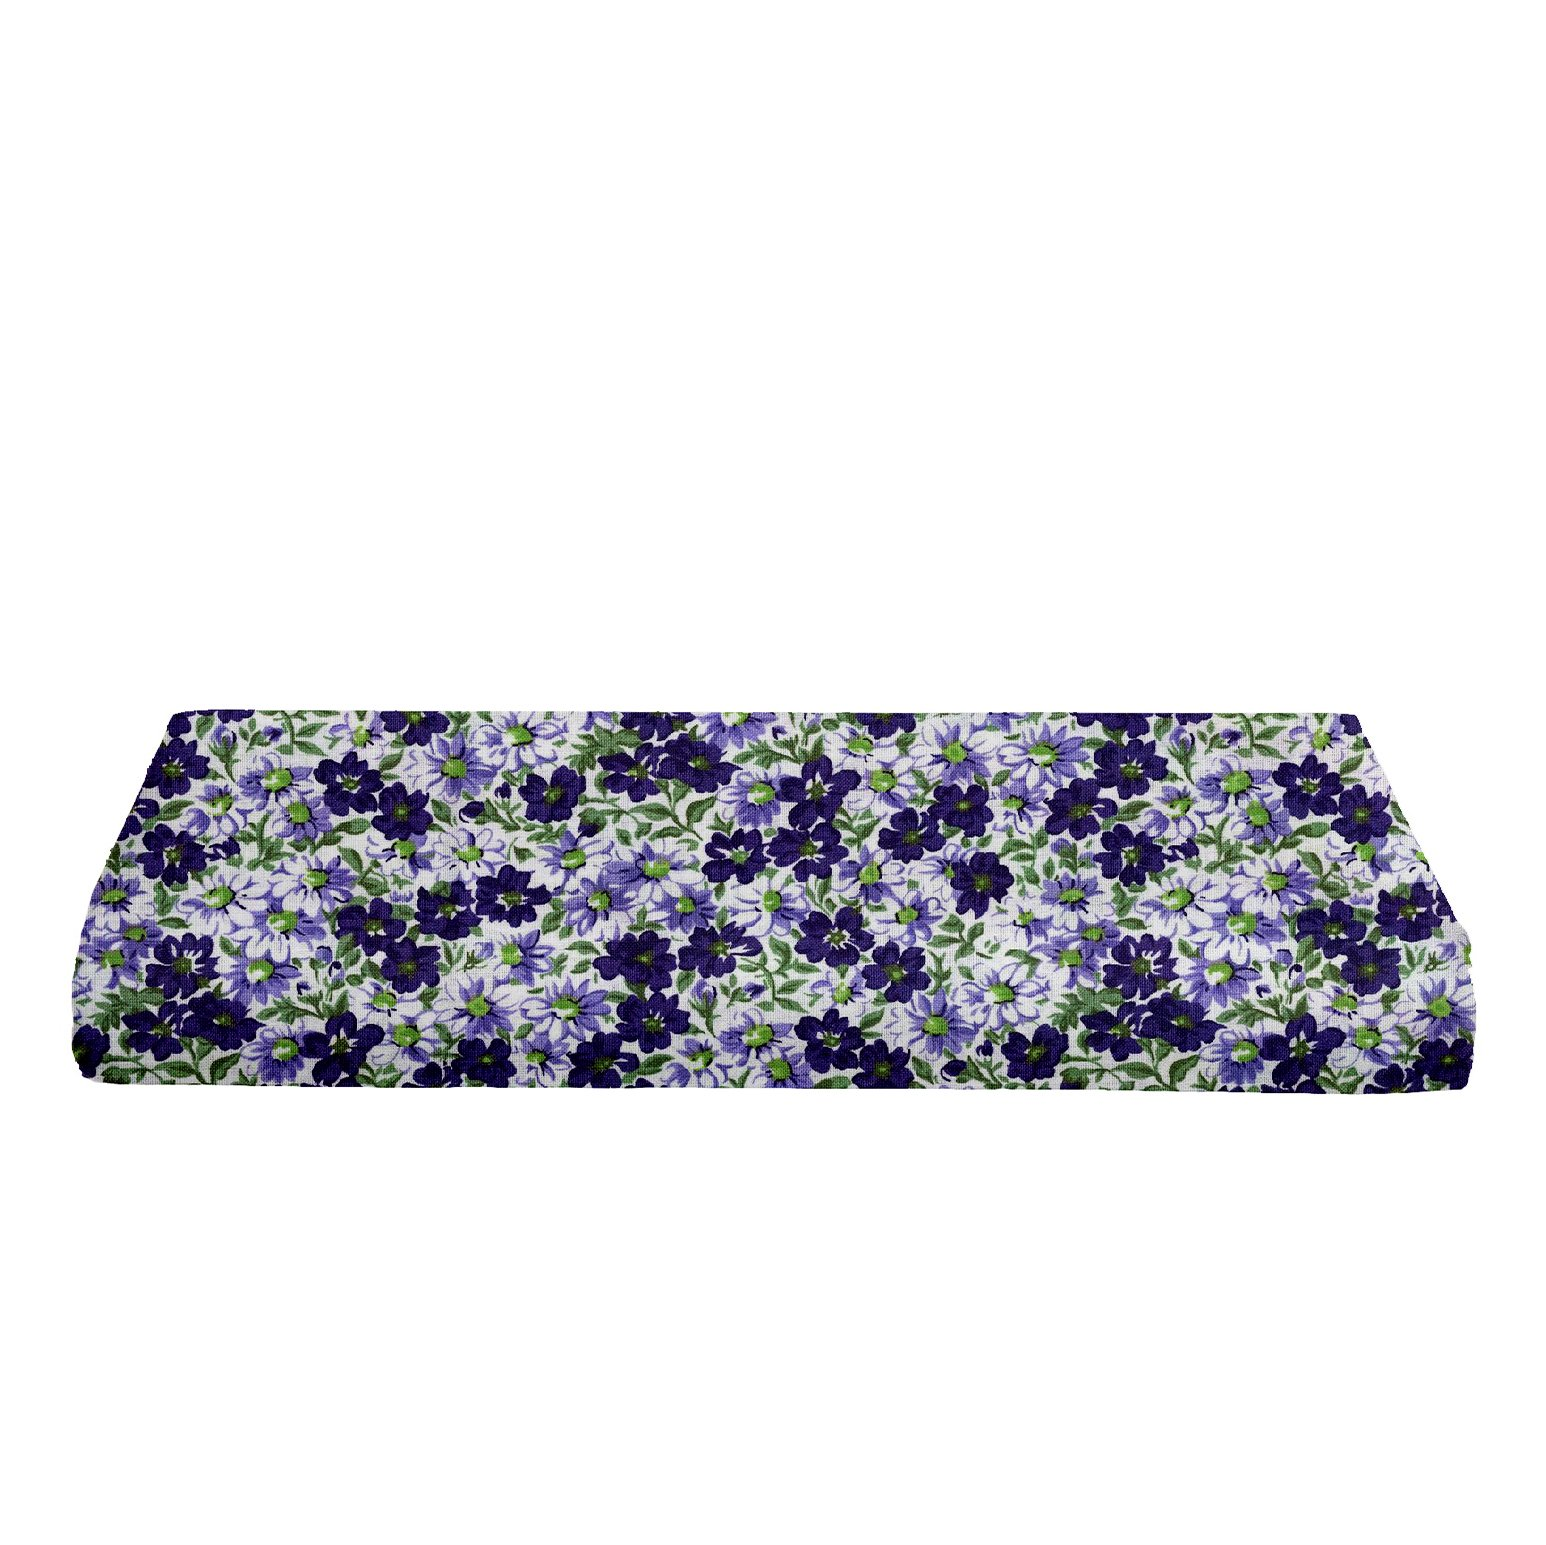 BKB Changing Table Pad Cover, Flower Patch Purple